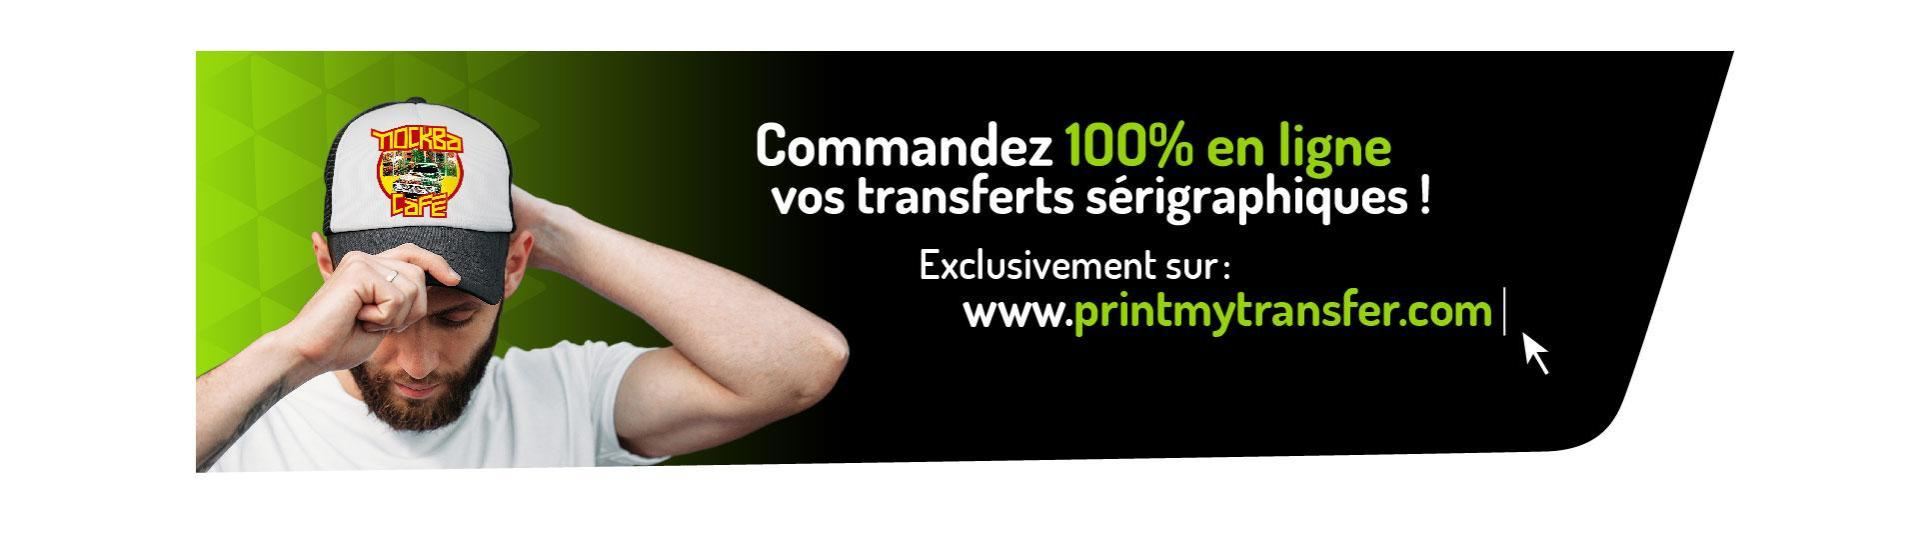 PROMOTIONALS - image 1